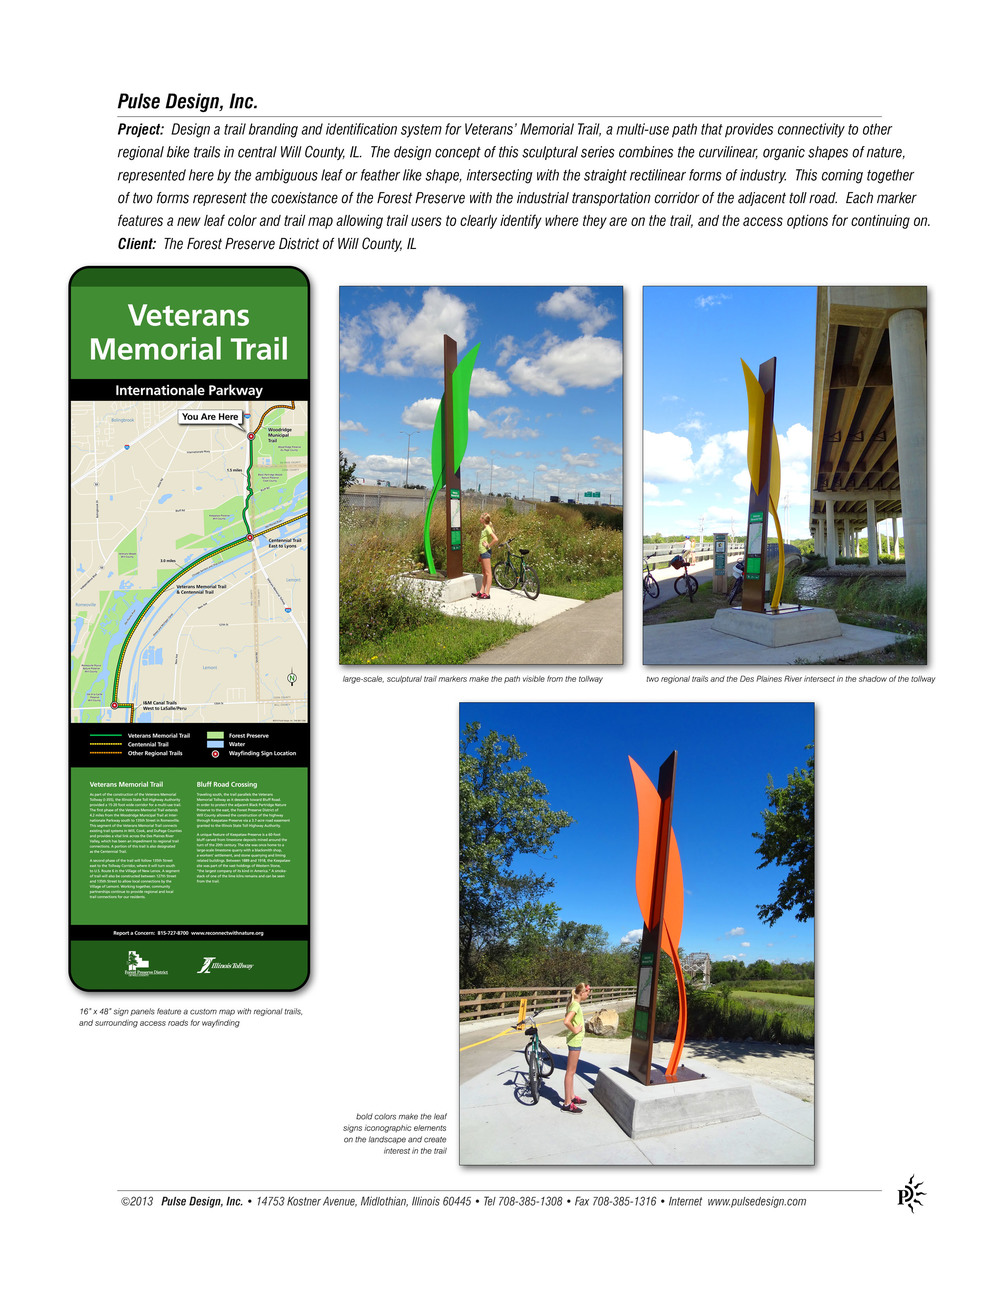 Veterans-Memorial-Trail-Sign-Photo-Multi-Pulse-Design-Inc.jpg